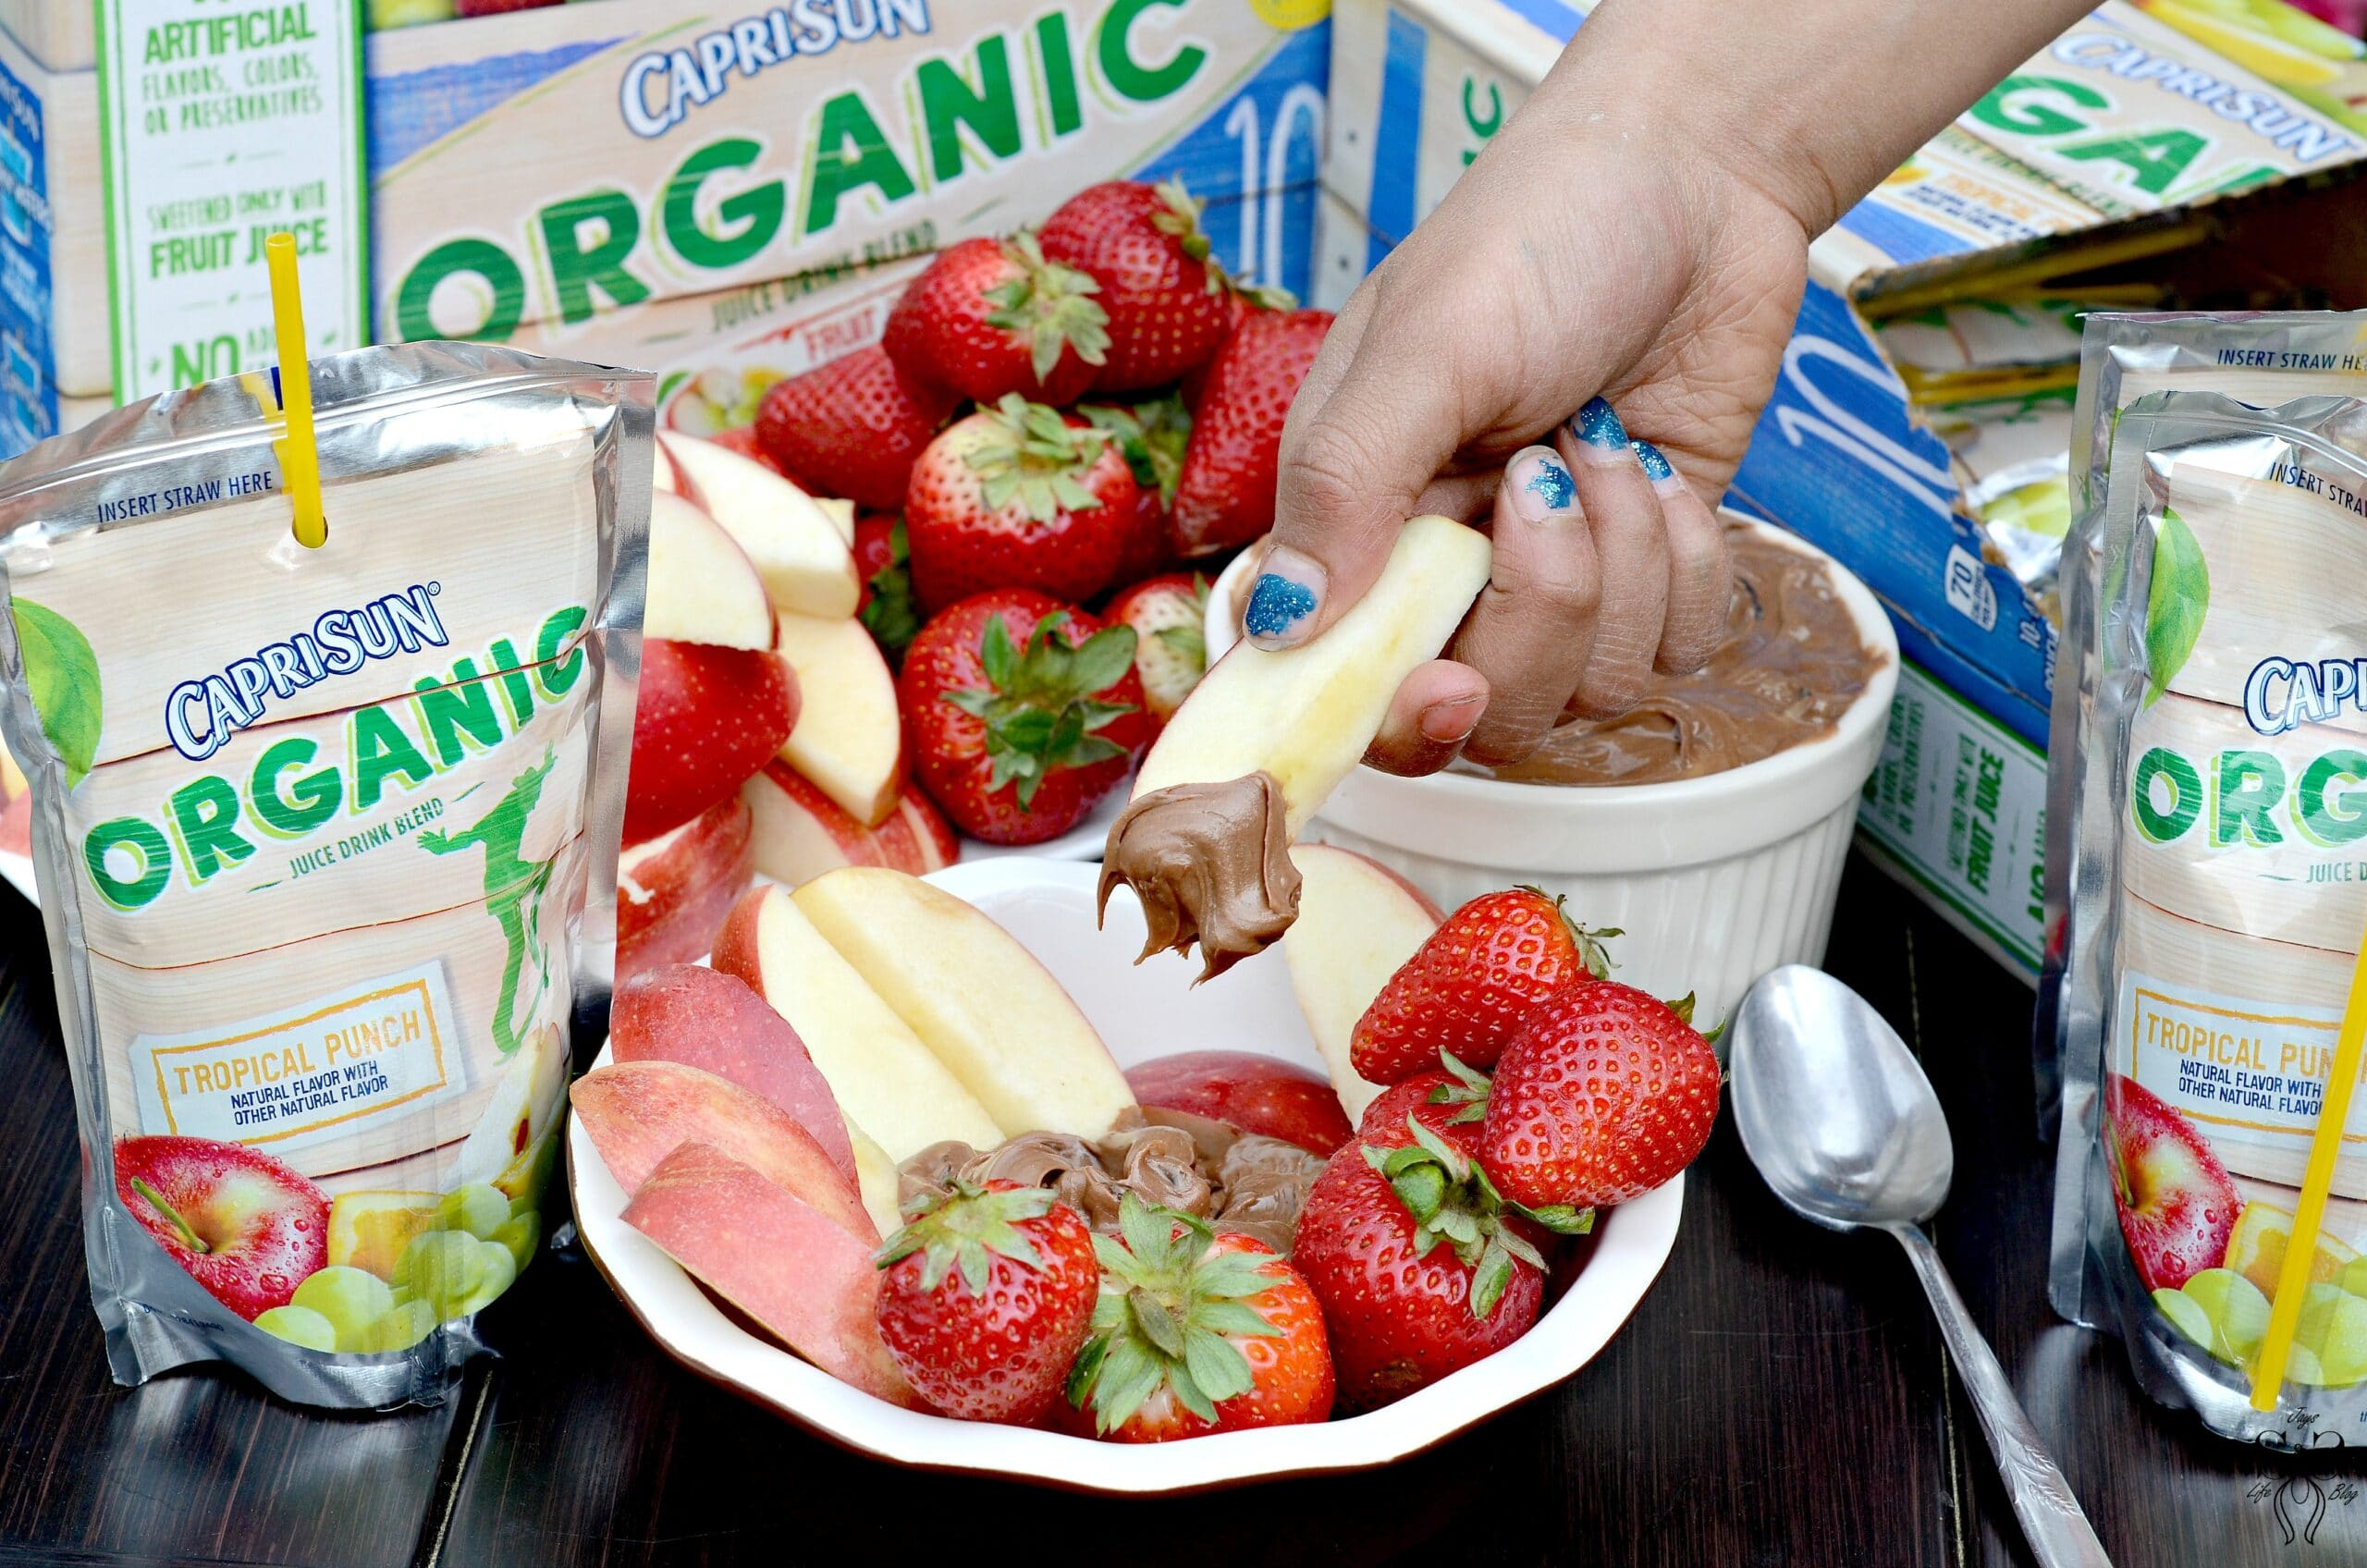 This 3 ingredients Chocolate Fruit Dip is the perfect snack to take with you on the go for family time at the park. It's a delicious refreshing summertime snack that won't weigh you down on a hot summer day.